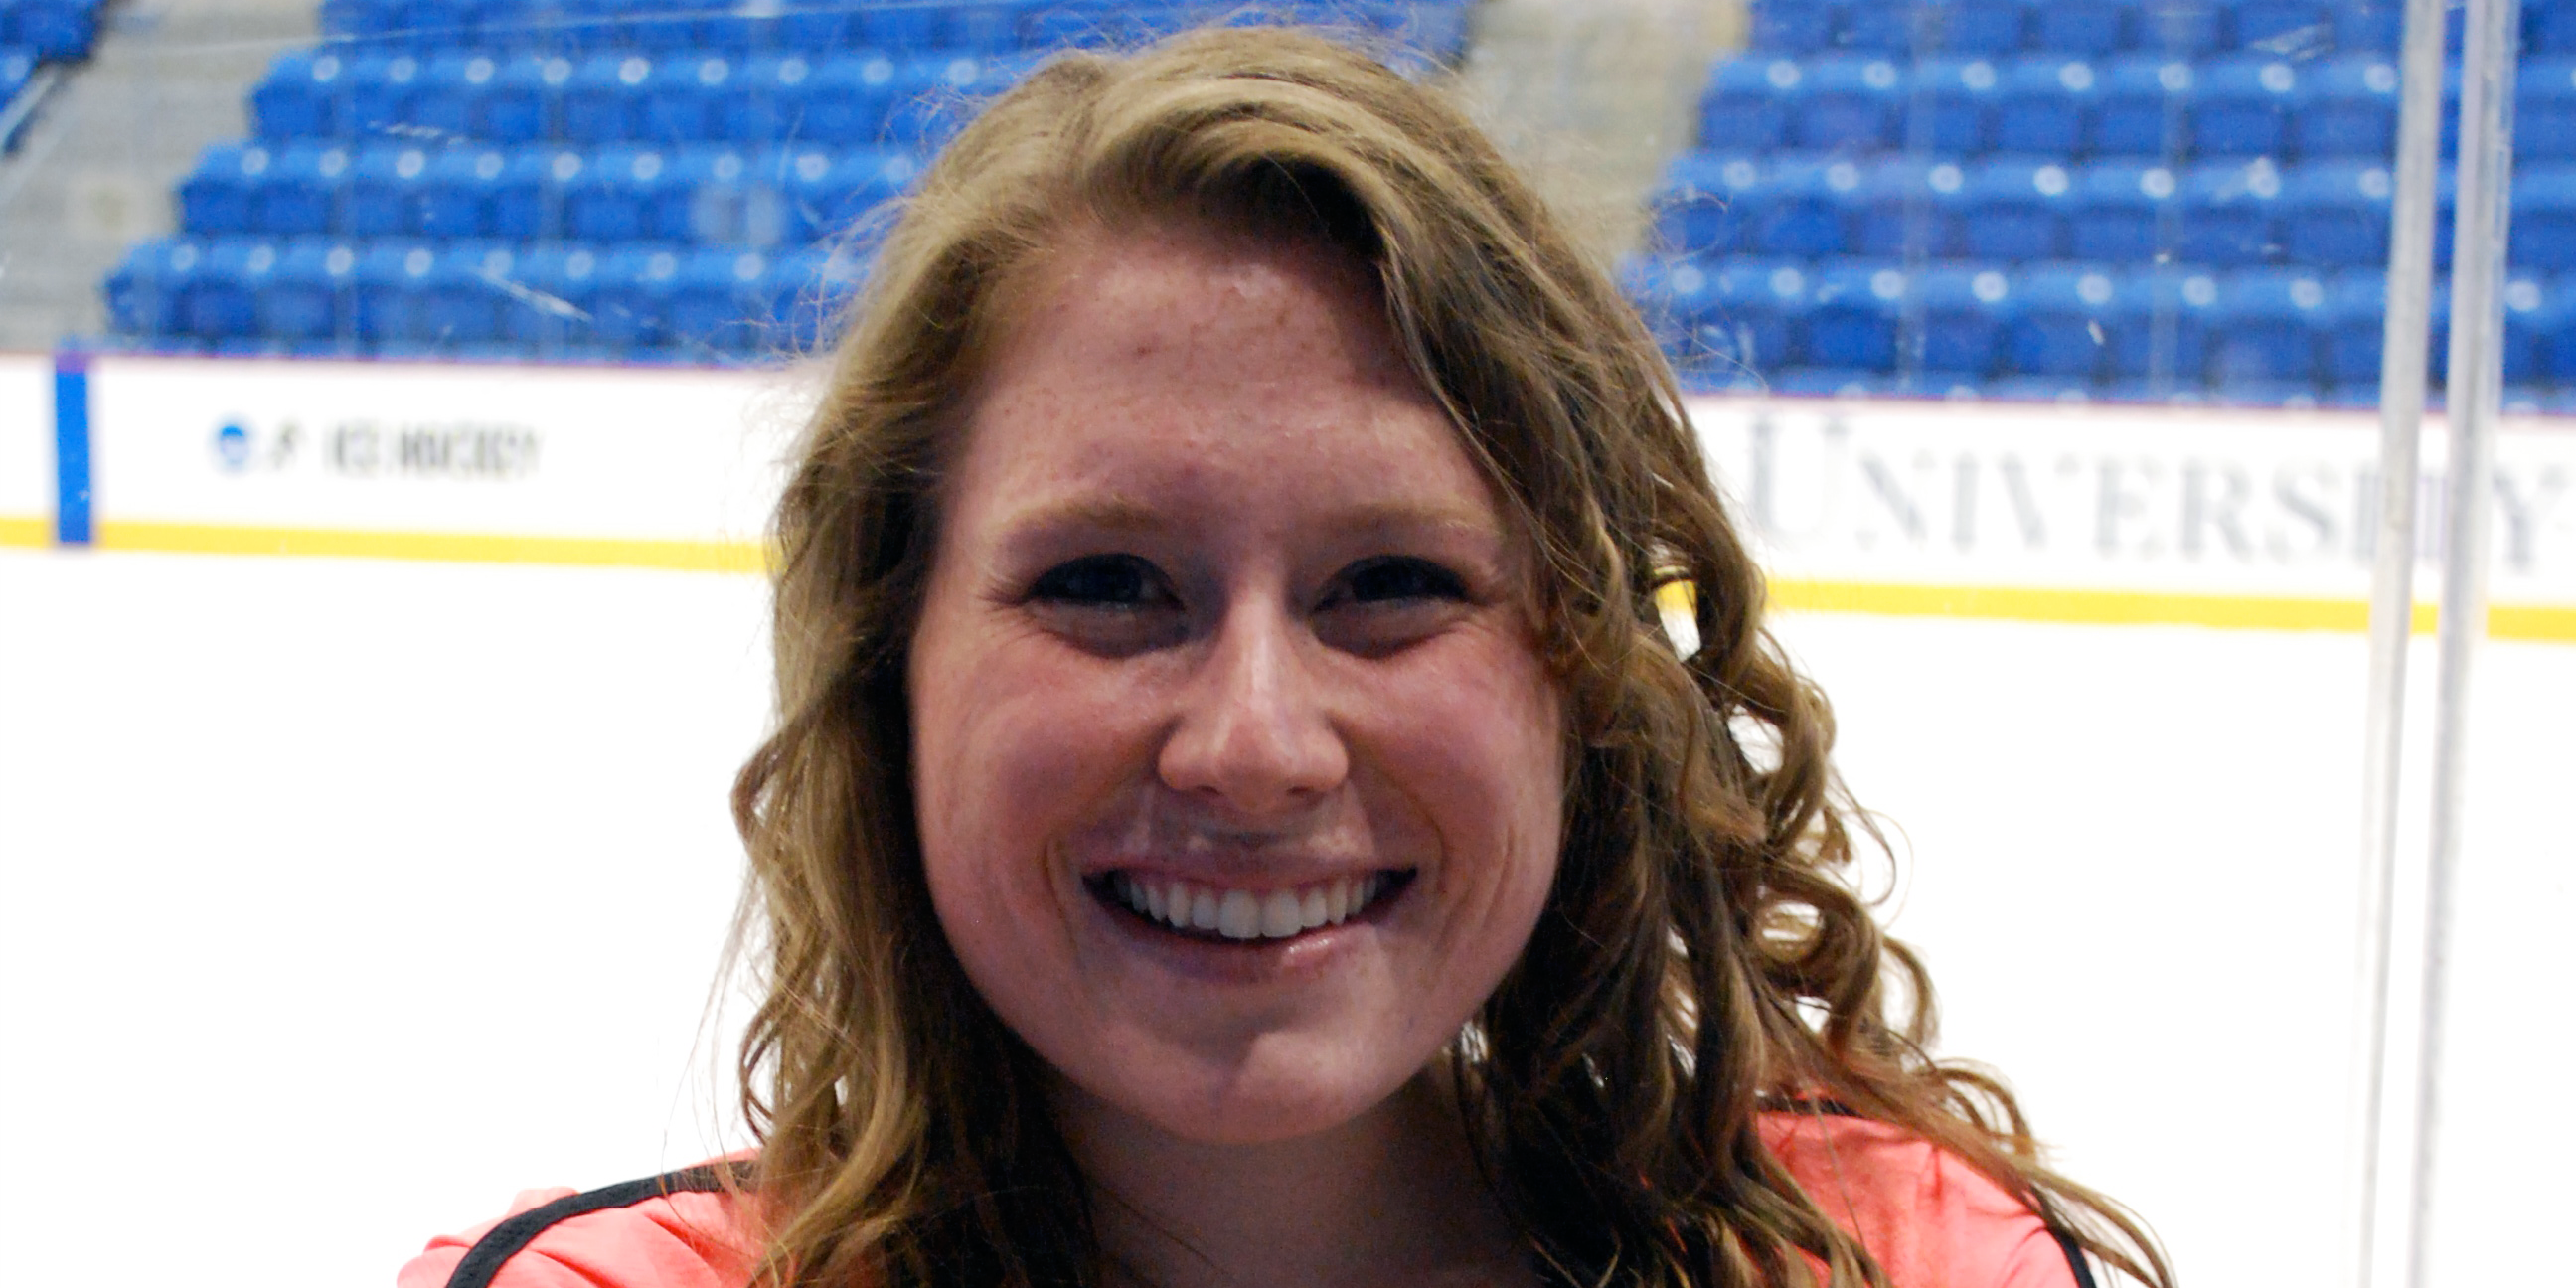 Senior Meghan Speranzo was a competitive skater for 17 years.